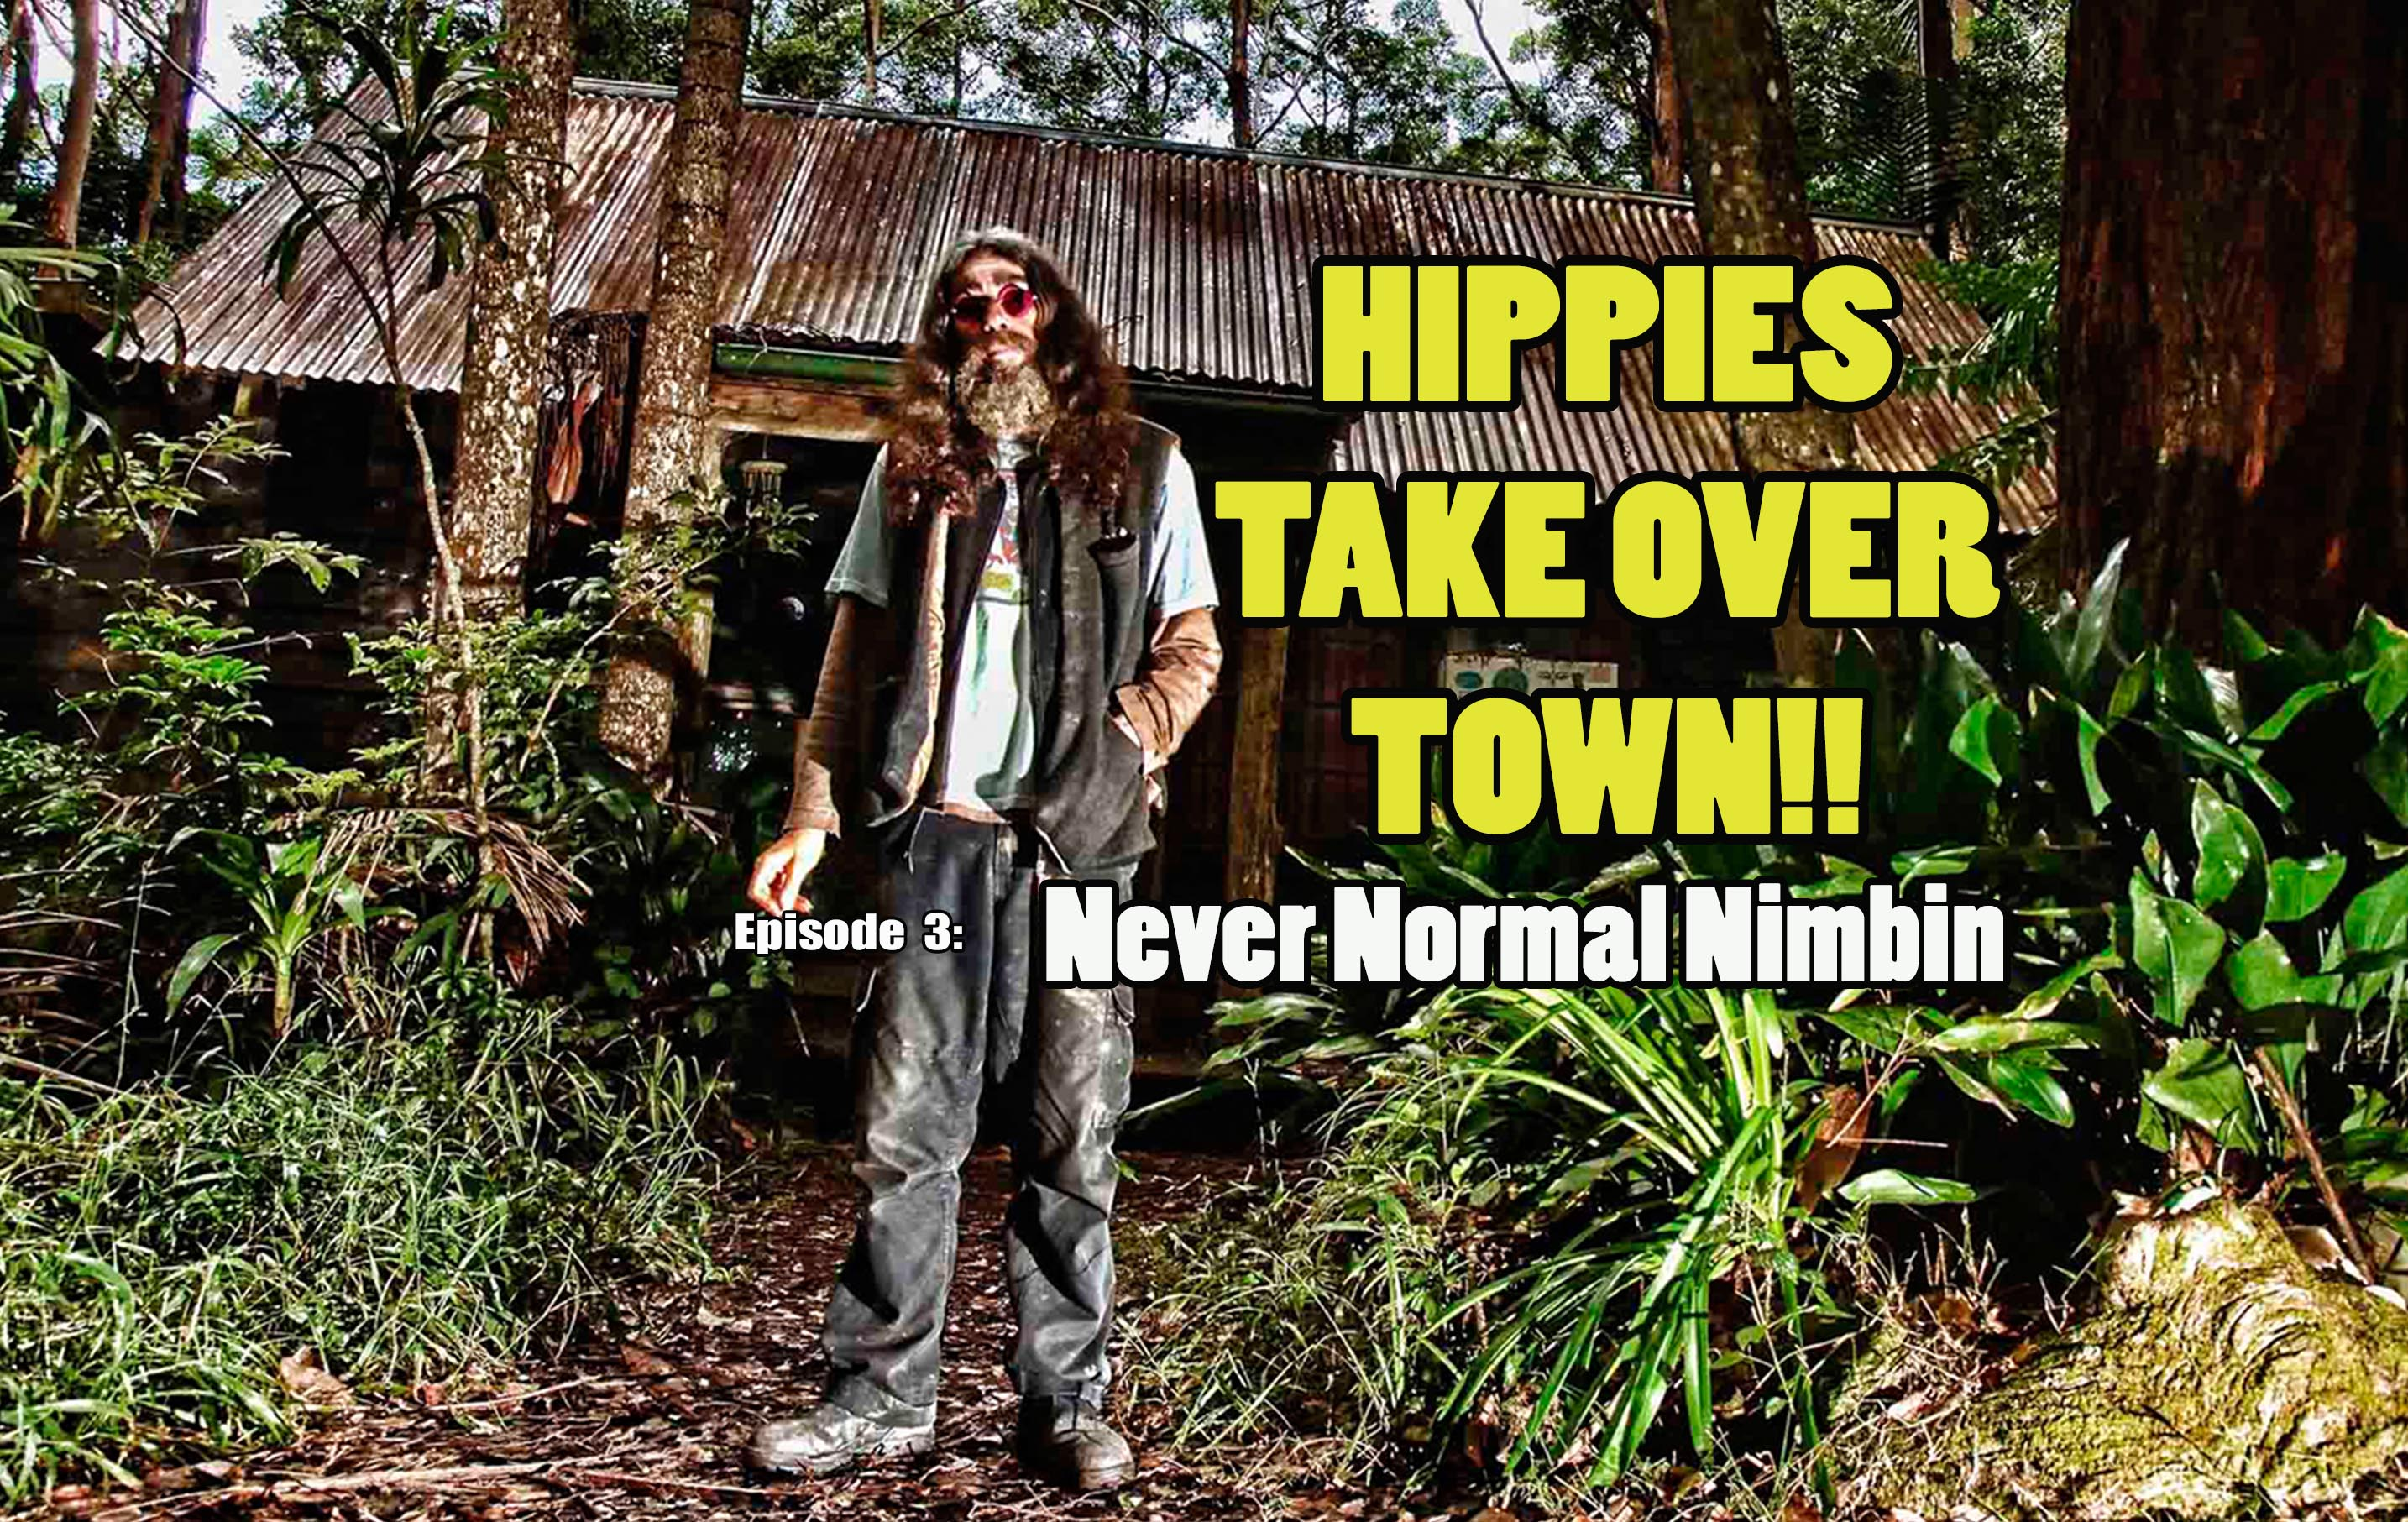 Never Normal Nimbin